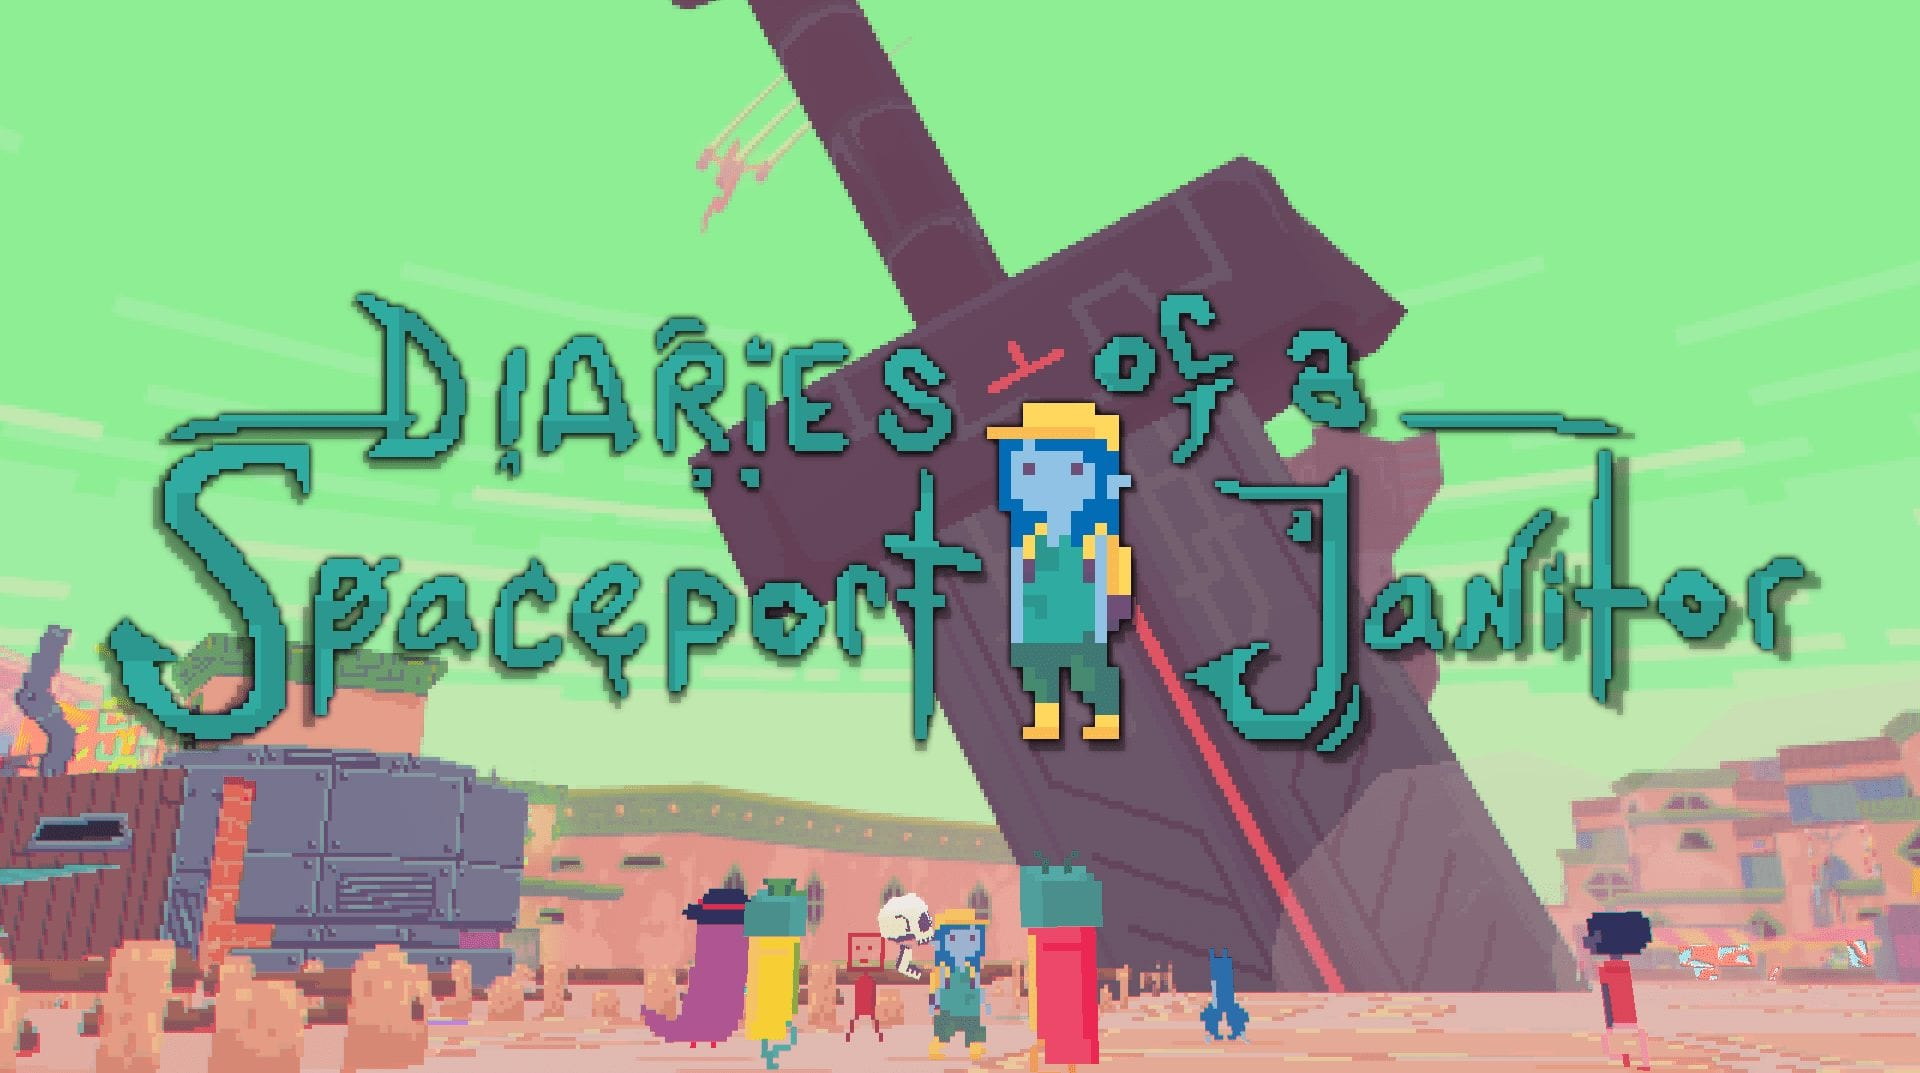 Diaries of a Spaceport Janitor – Review